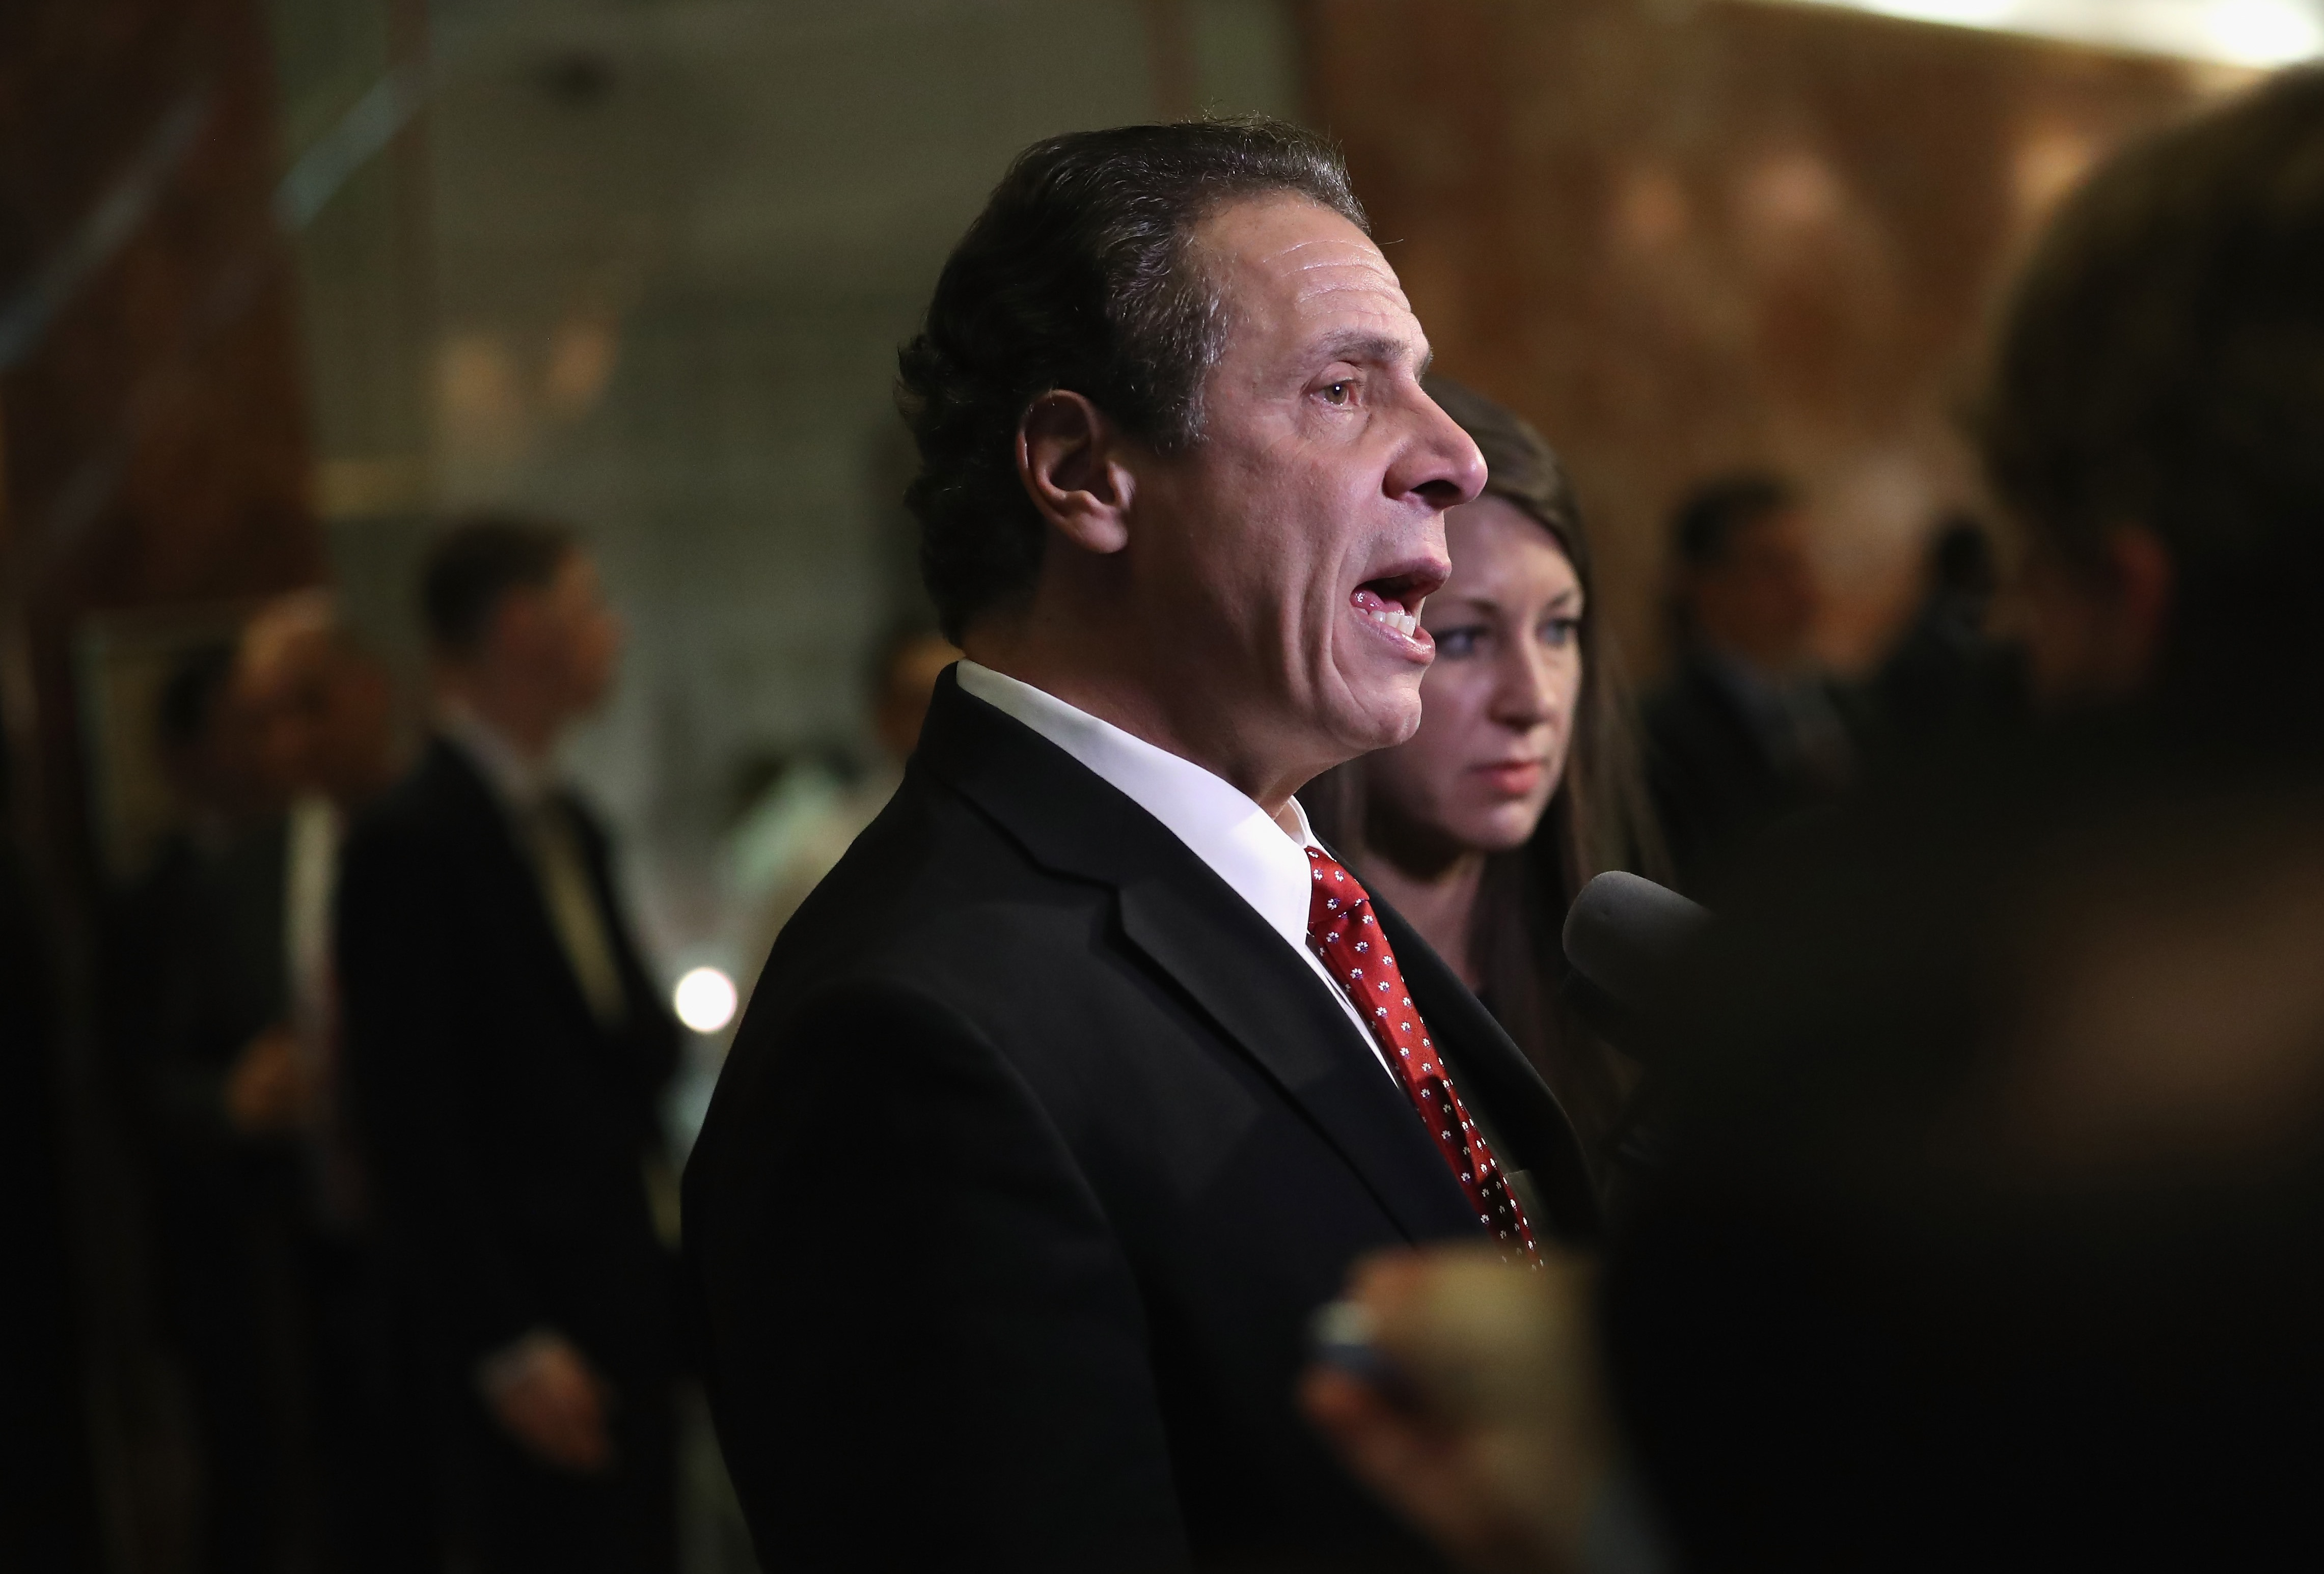 """""""Women deserve to make a fair wage and the same salary as any man, they deserve to work in an office free of sexual harassment, they deserve comprehensive paid family leave and they deserve control over their health and reproductive decisions,"""" Gov. Andrew Cuomo said in a statement. (Getty Images)"""